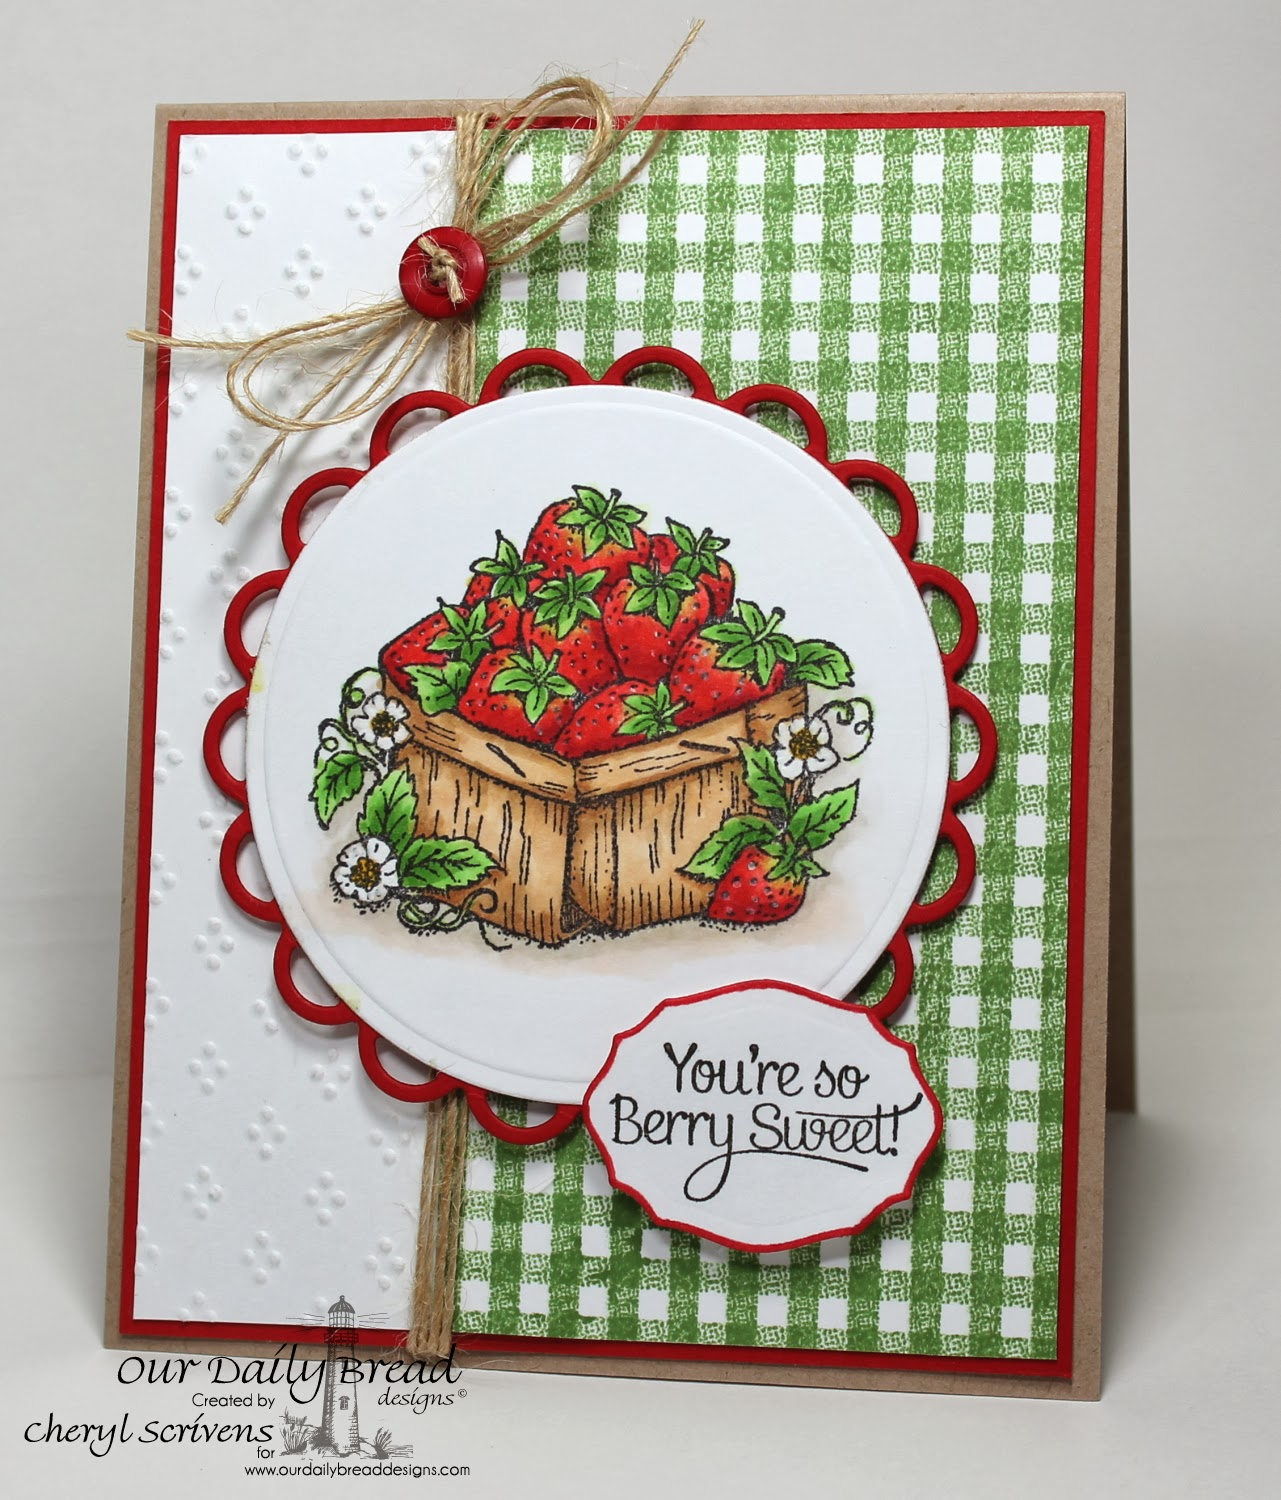 Our Daily Bread Designs, Strawberries, Gingham Background, ODBD Elegant Ovals dies, CherylQuilts, Shining the Light Challenge, Designed by Cheryl Scrivens